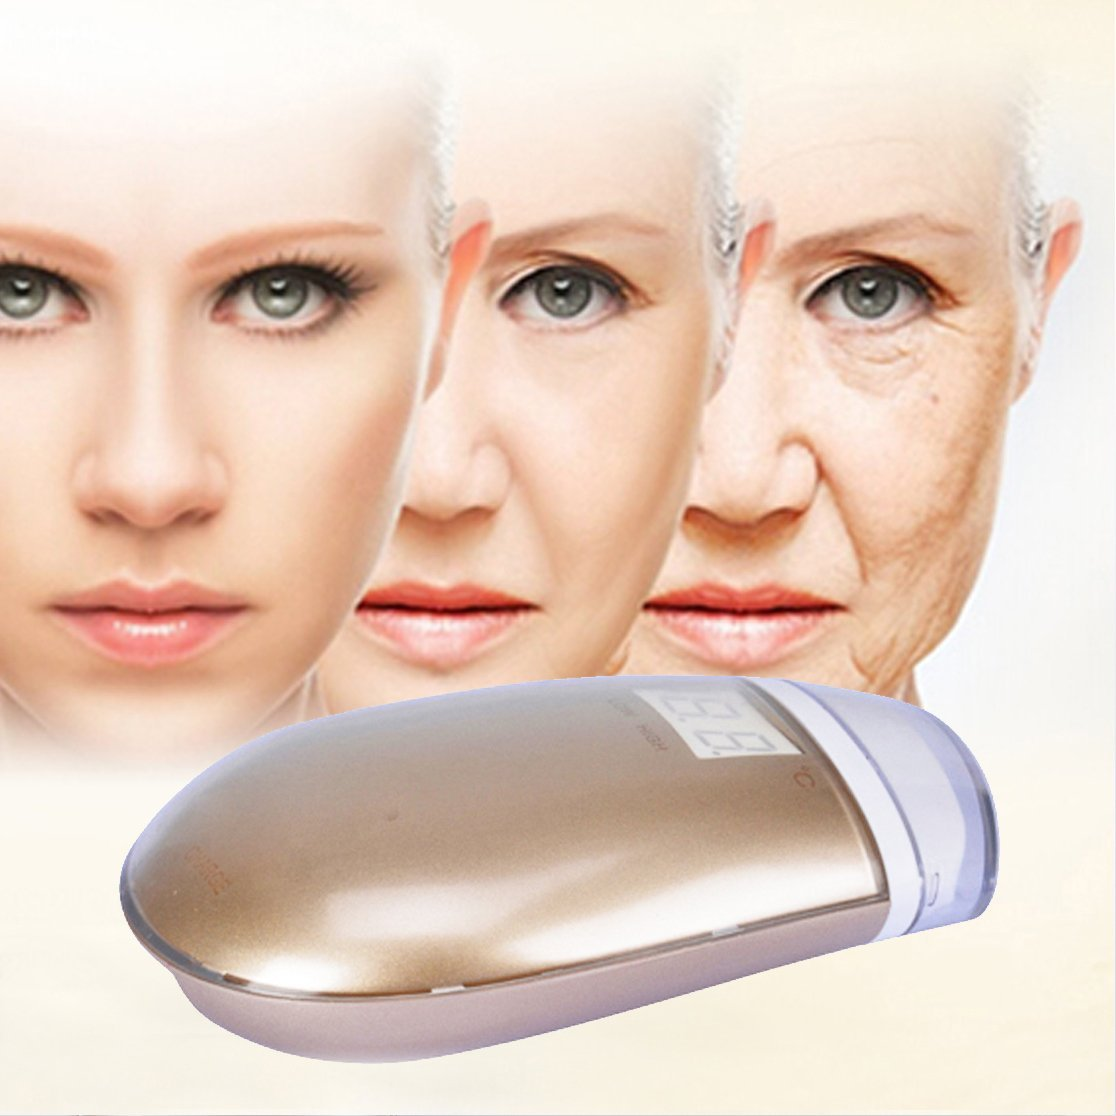 Radiofrequency Face Lift Beauty Wrinkle Remover Anti-Aging Radiofrequency Skin Tightening Beauty and Body Weight Loss device neurobiology of epilepsy and aging 81